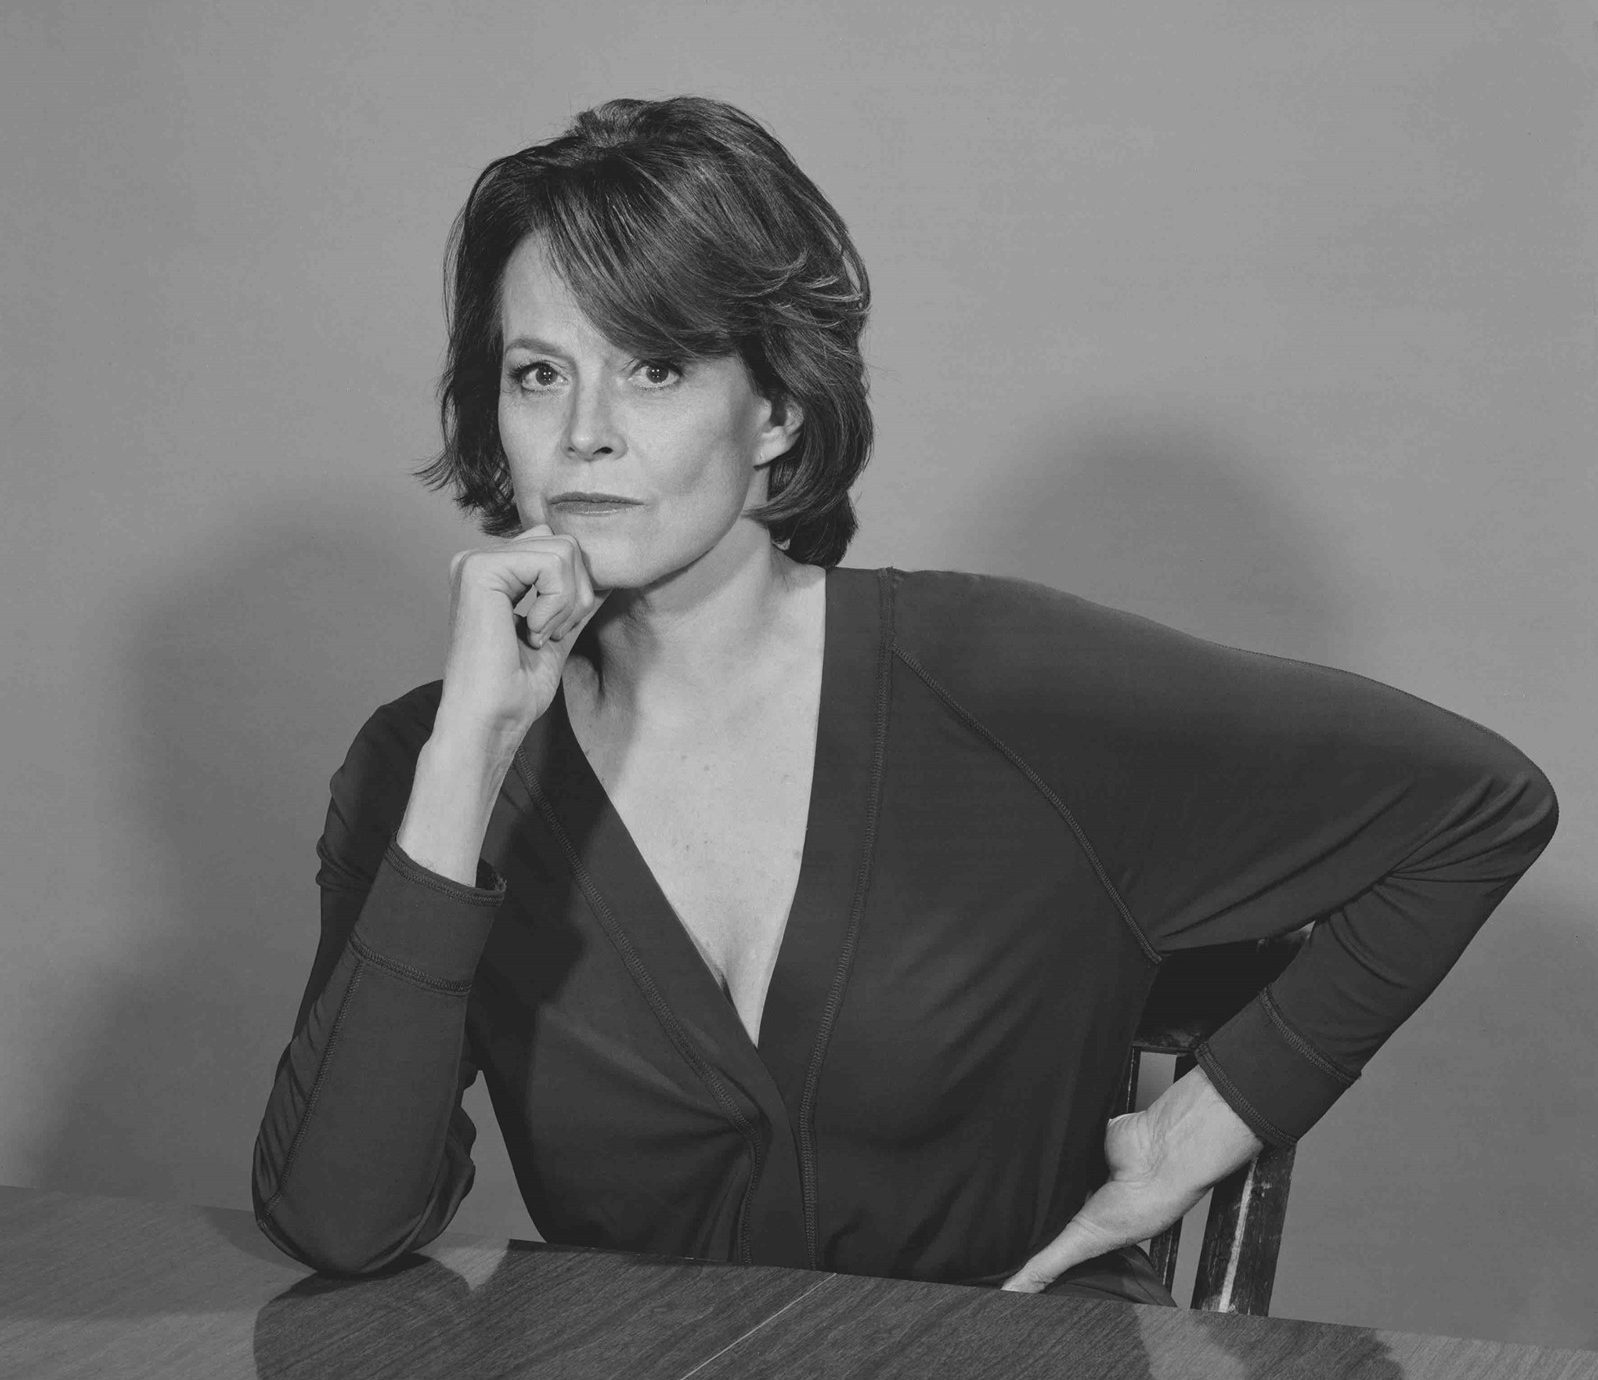 397837 e1609765094571 20 Things You Probably Didn't Know About Sigourney Weaver